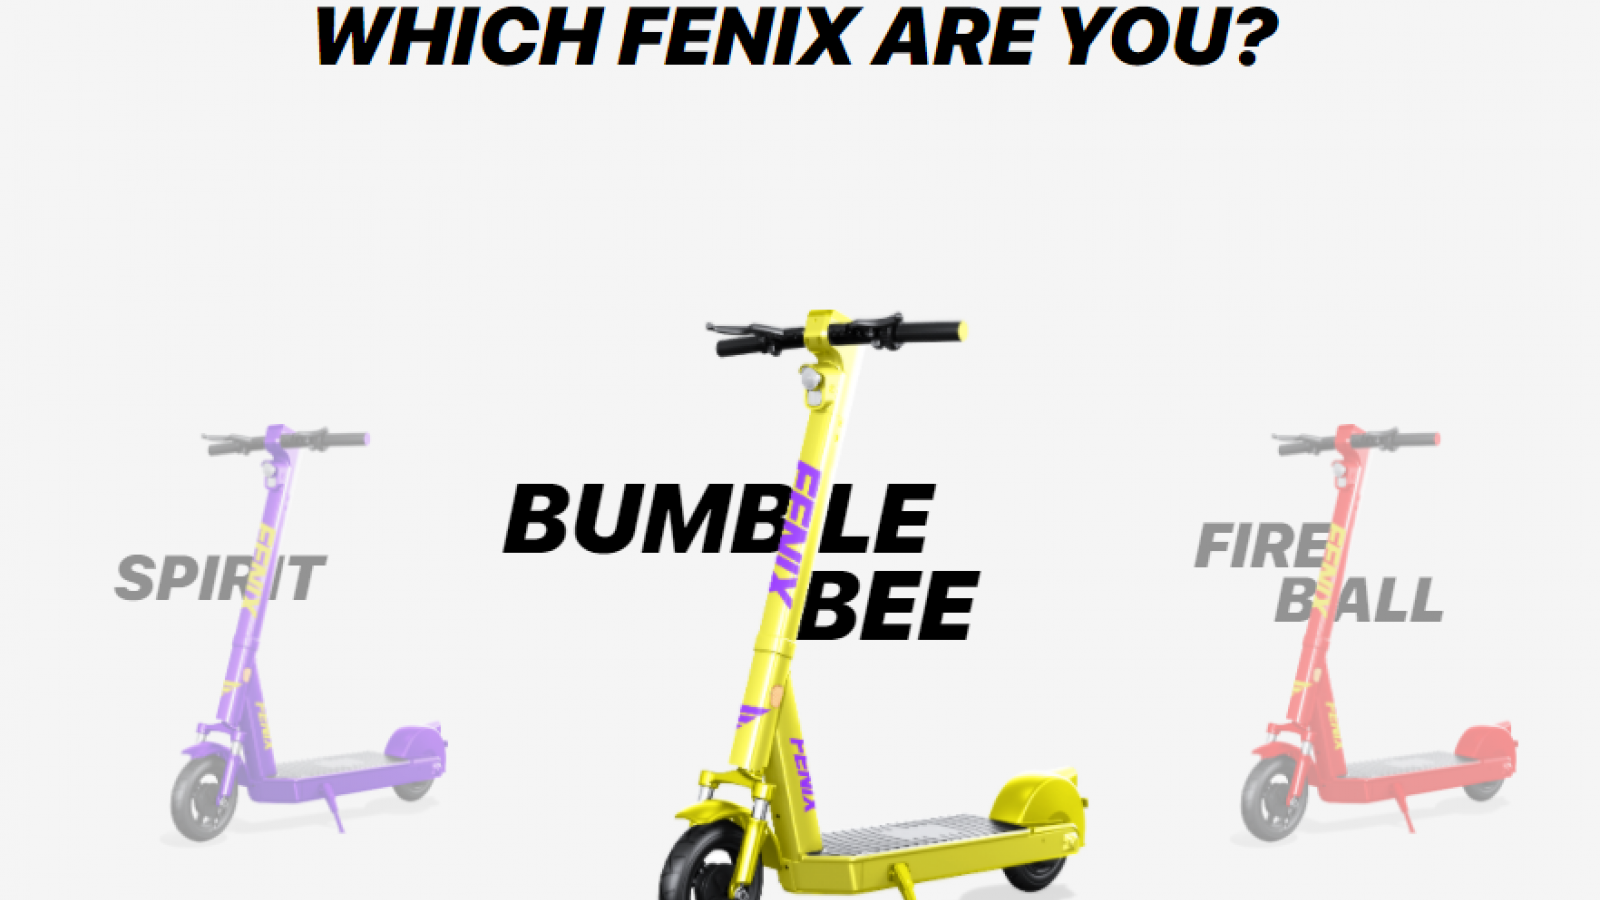 Fenix announces the launch of licensed e-scooter transport services in Qatar